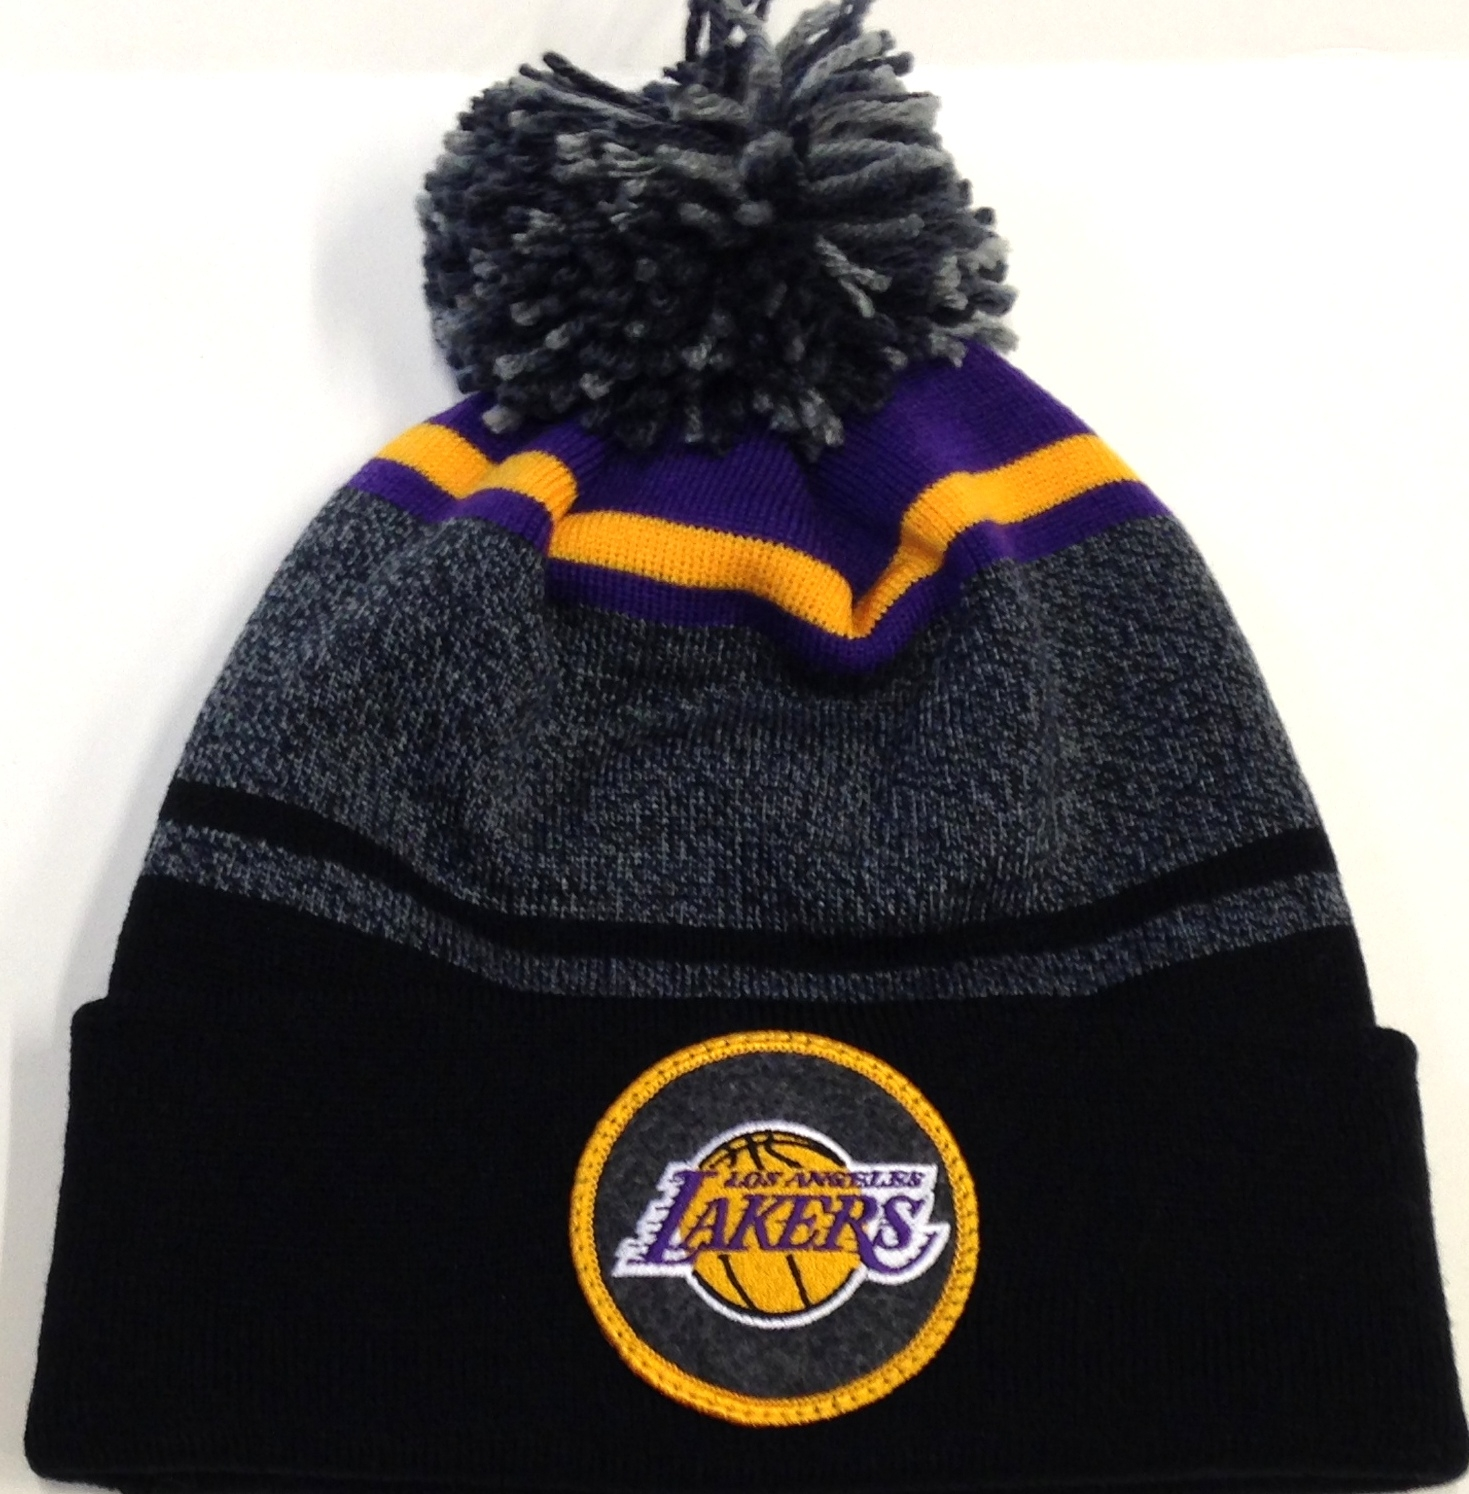 Lakers Beanies Hat 2dd7297dc7a